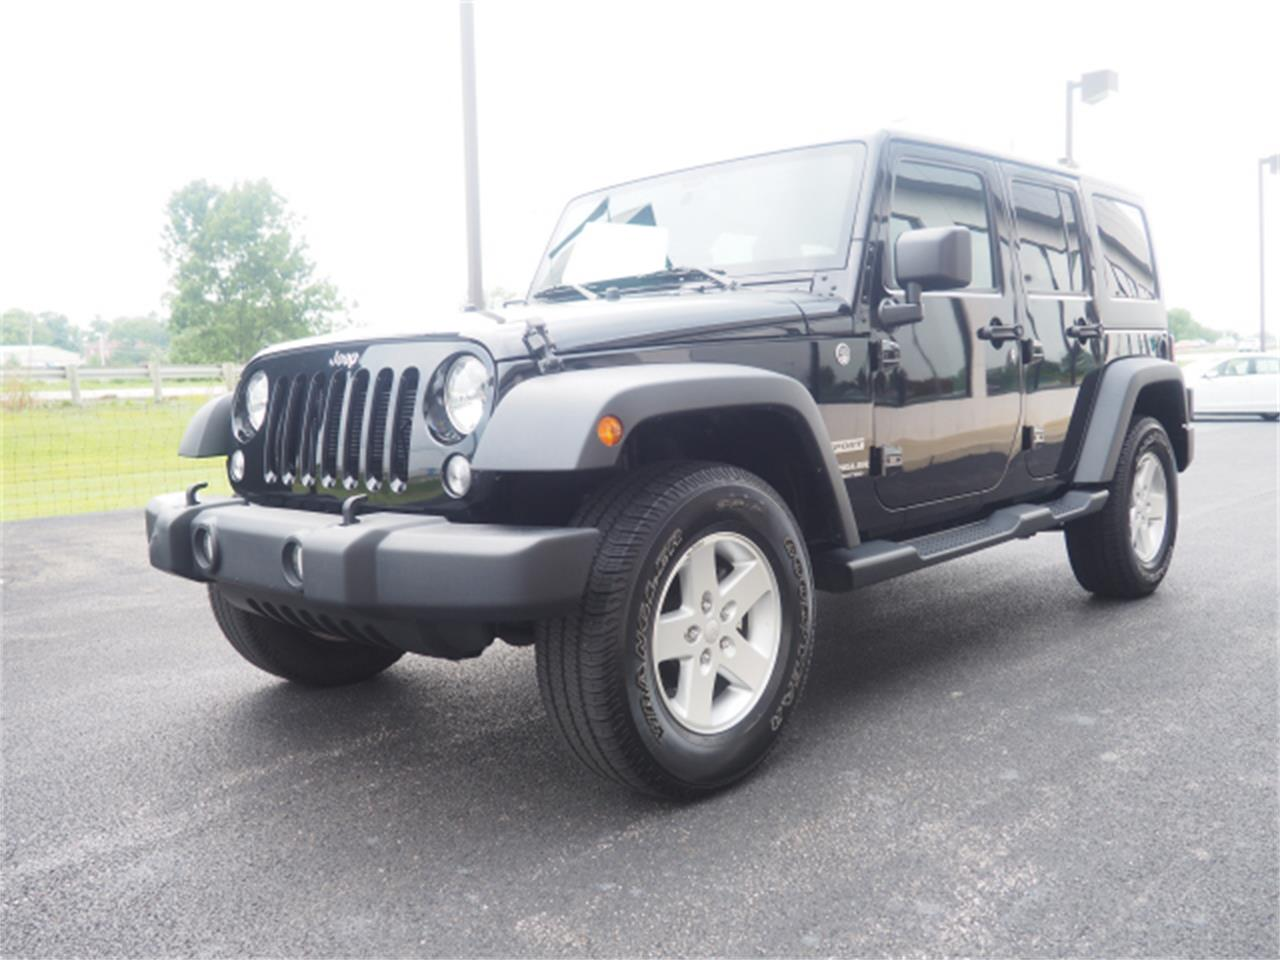 Large Picture of '15 Jeep Wrangler located in Marysville Ohio - $27,999.00 - PPKT